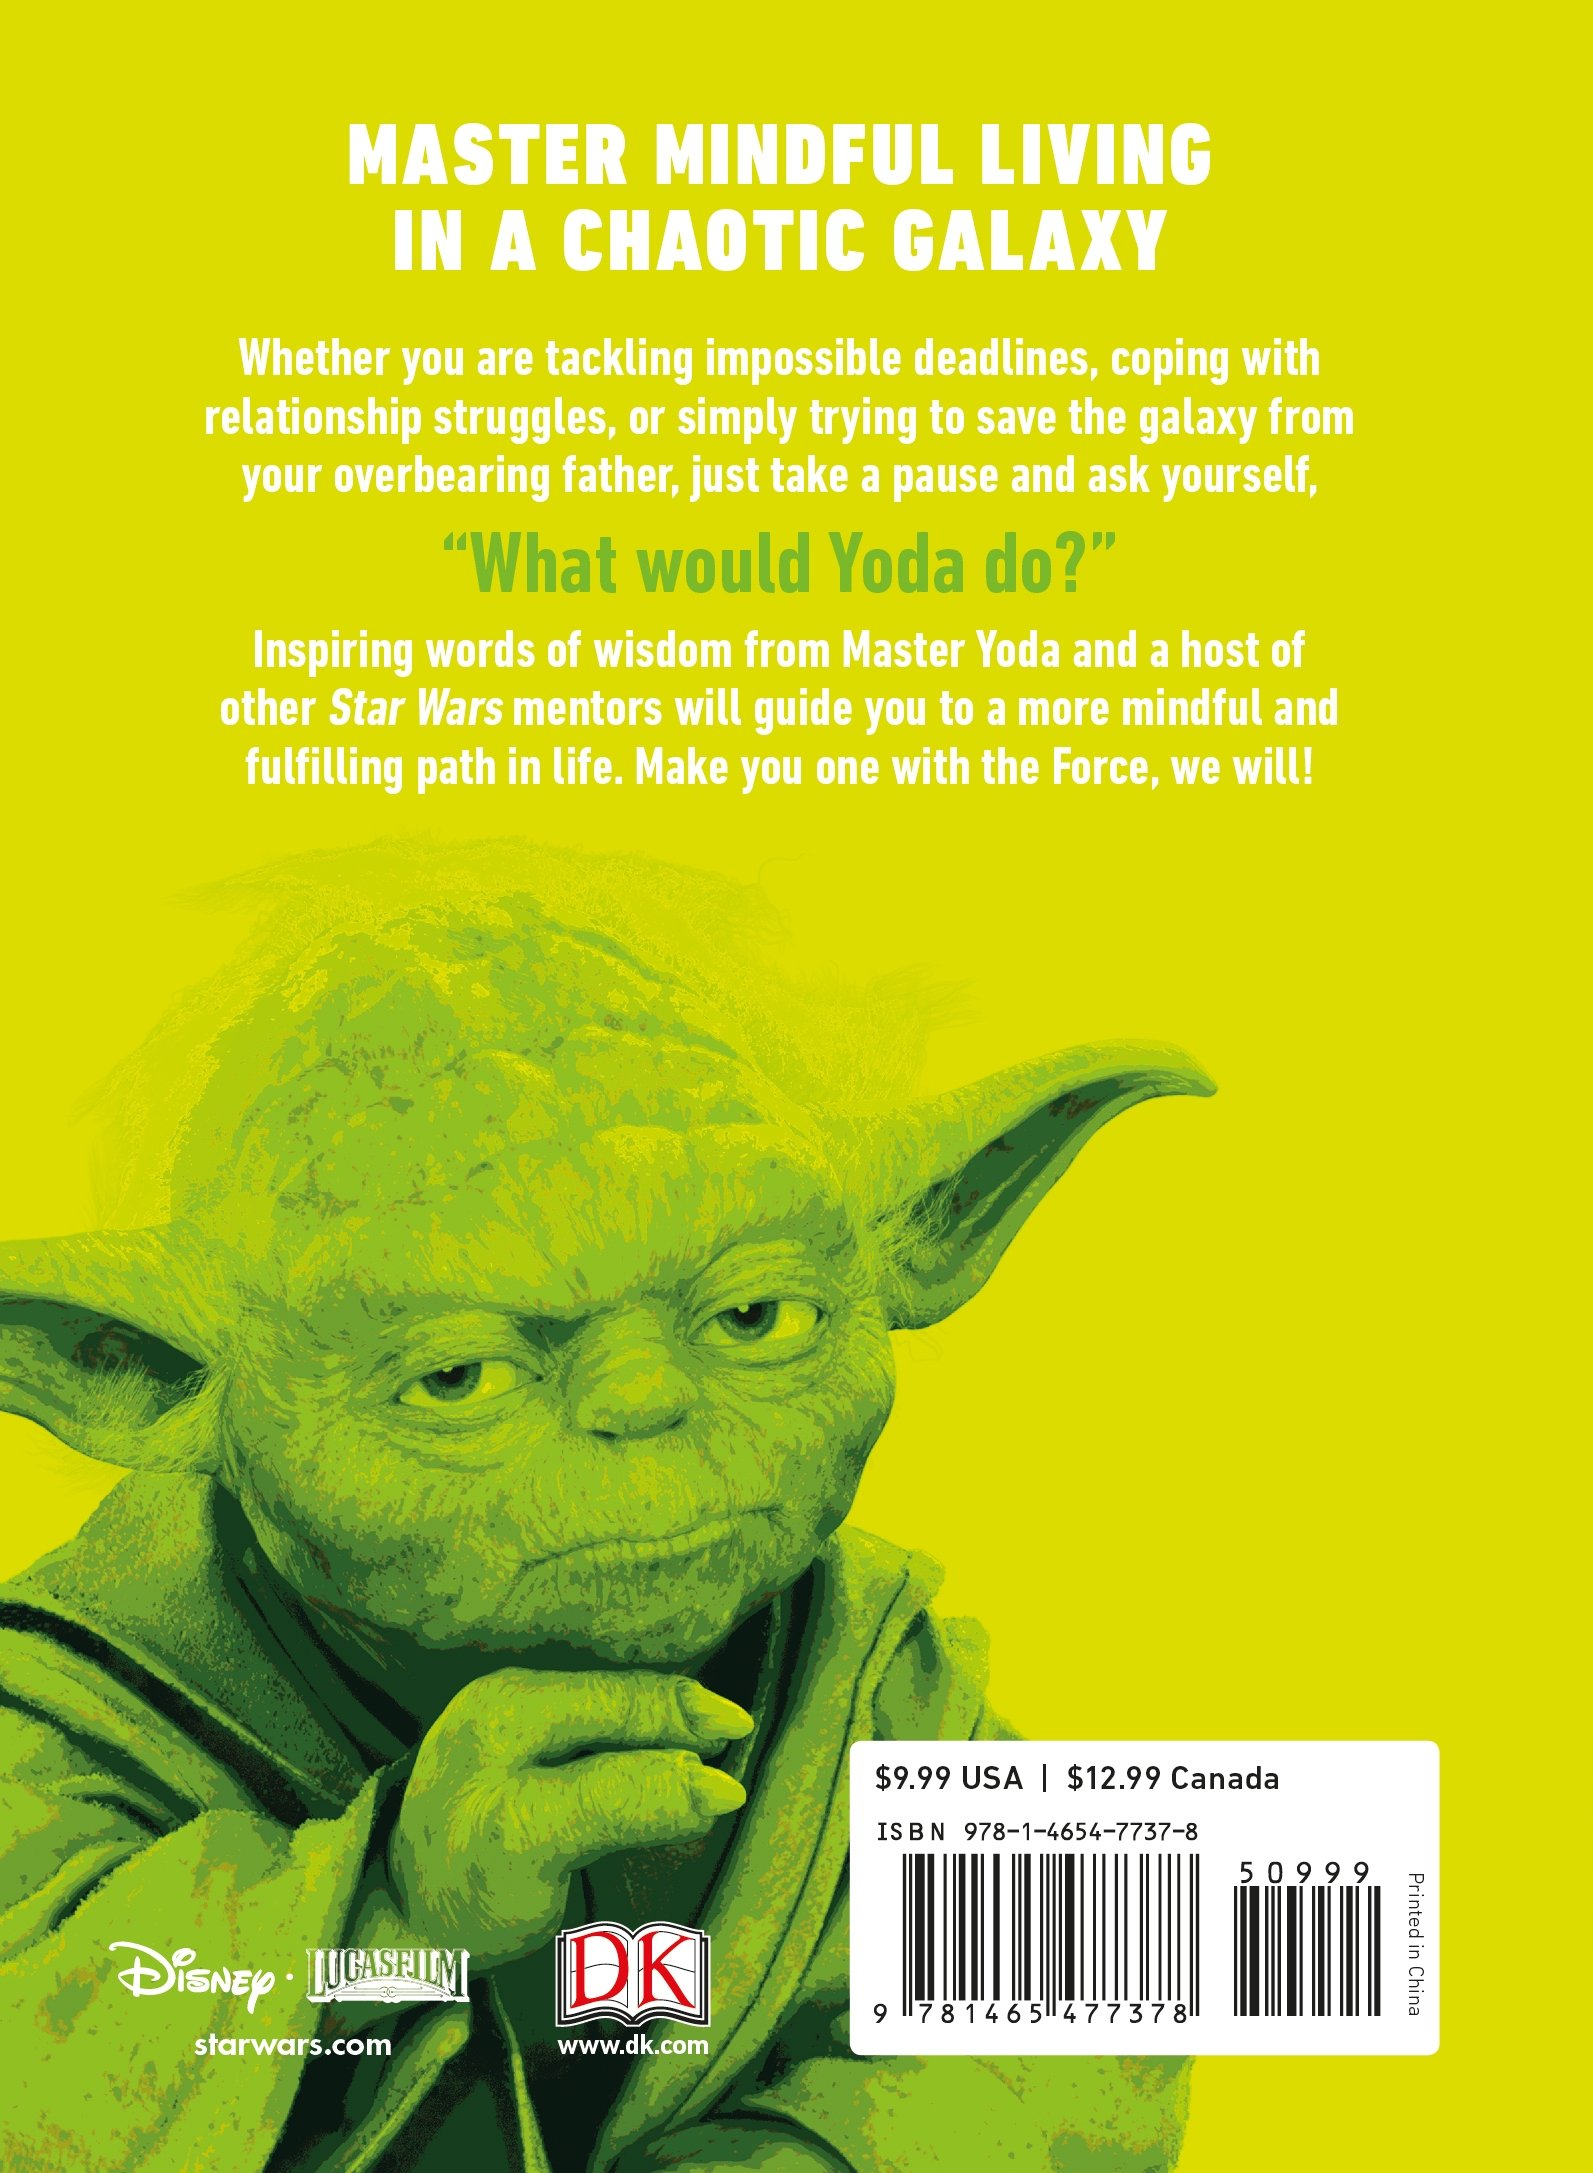 Star Wars Be More Yoda Mindful Thinking From A Galaxy Far Far Away